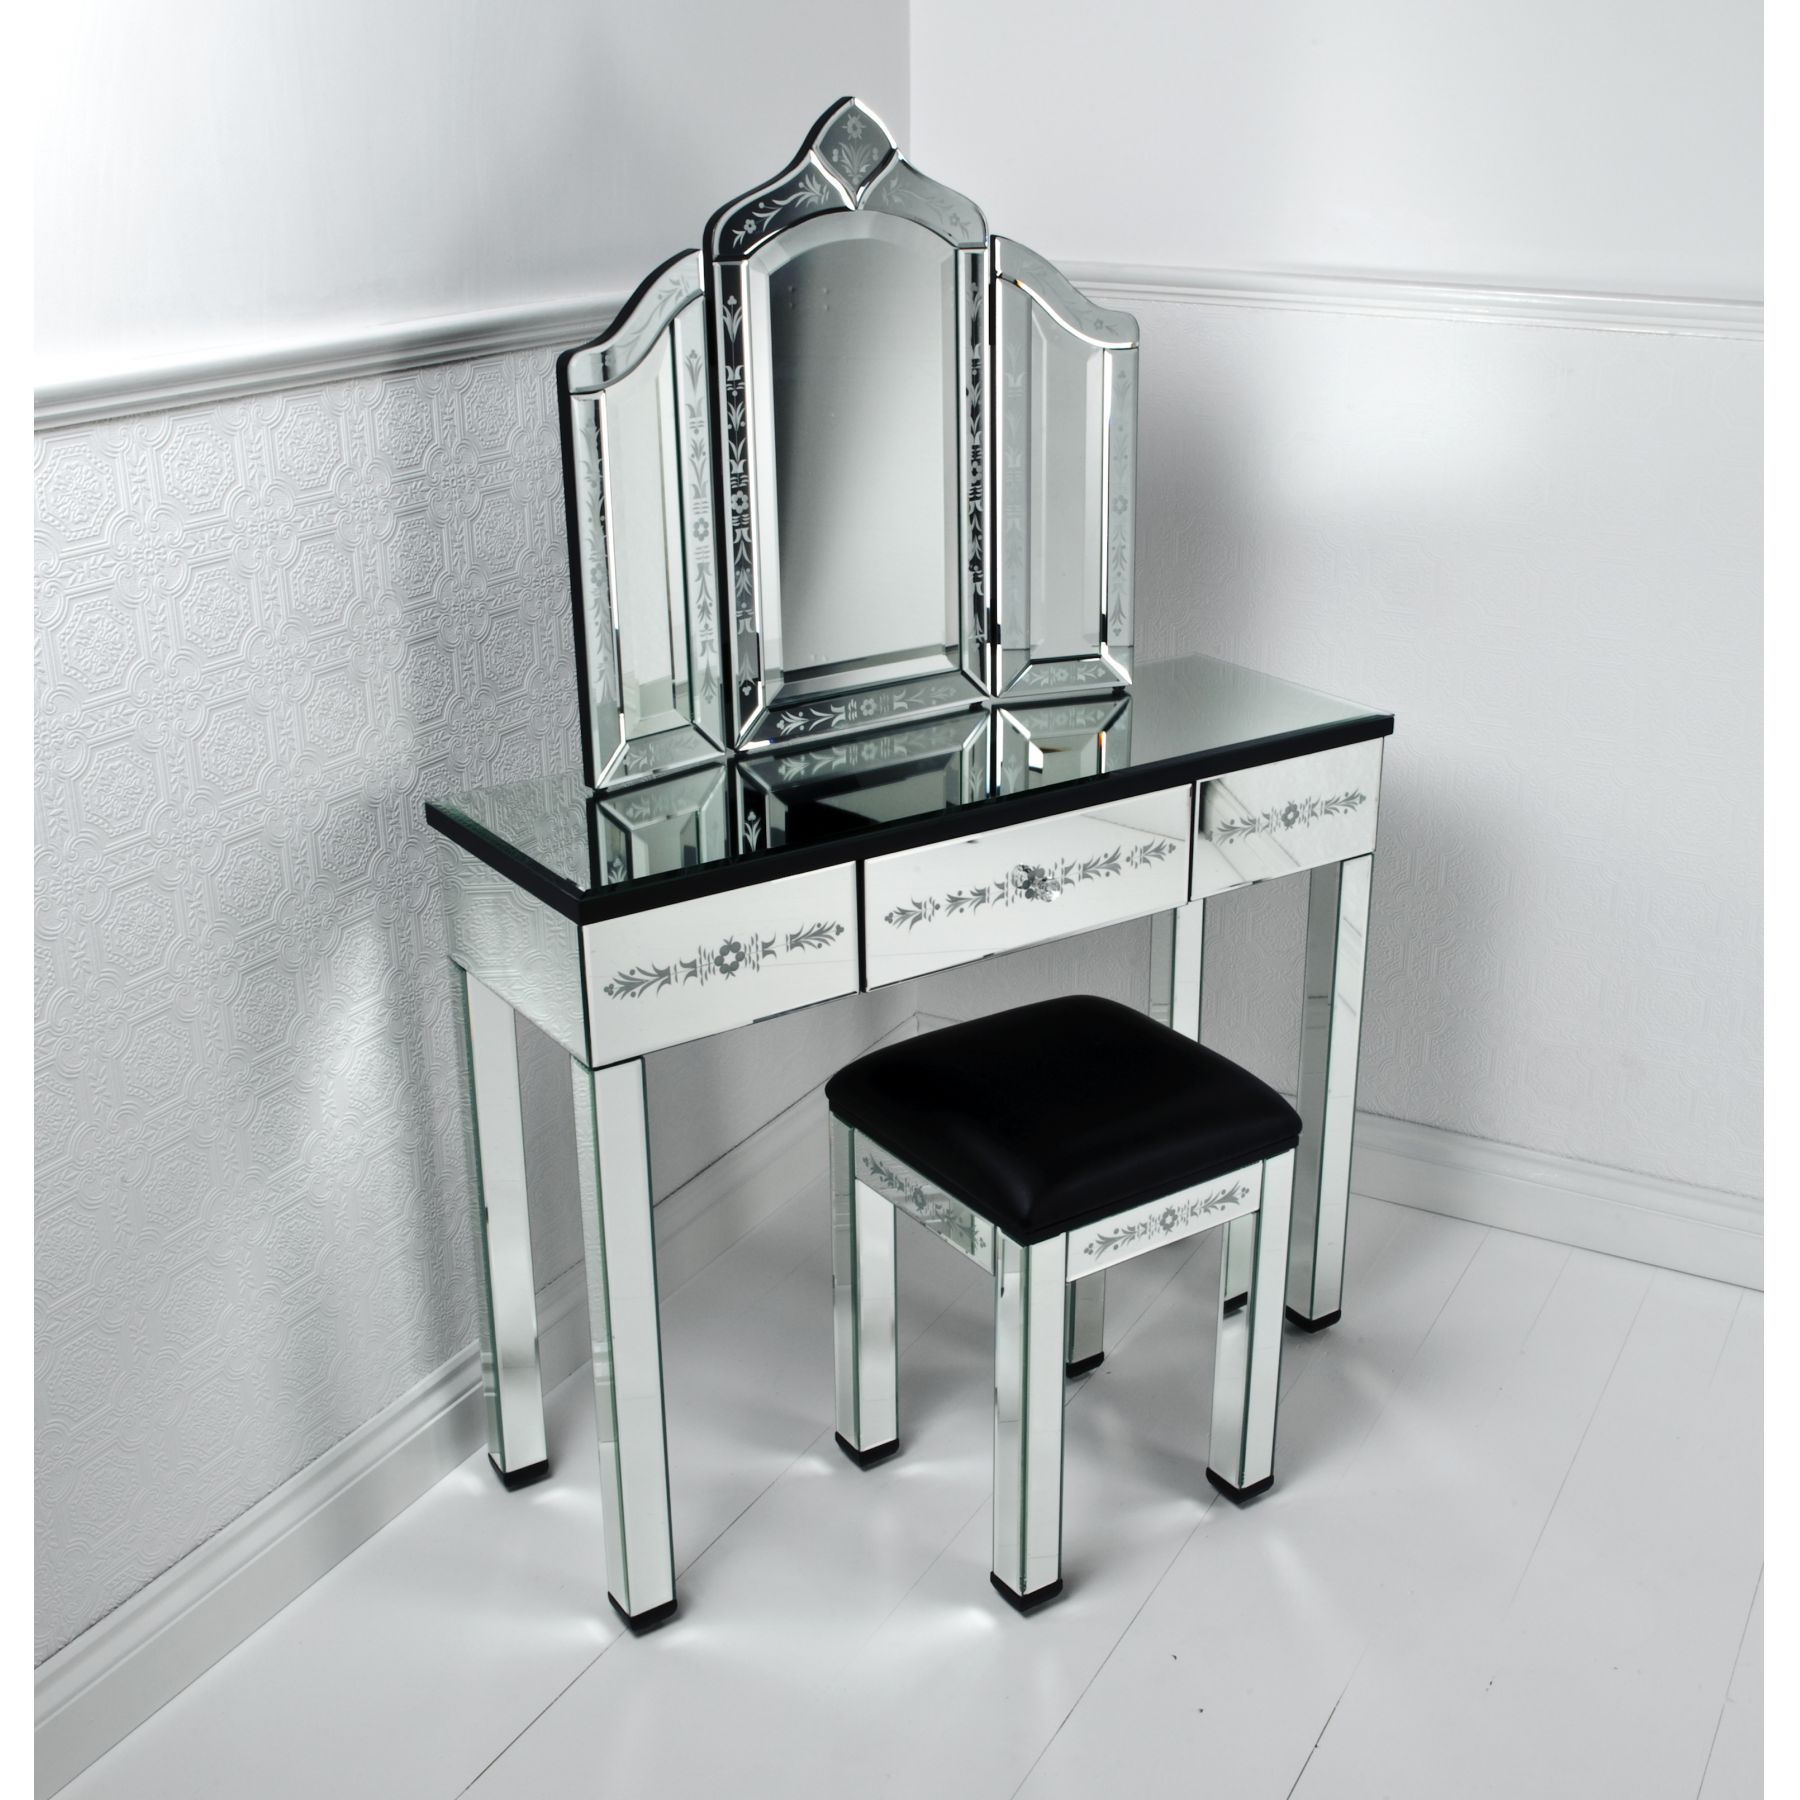 Furniture Corner Mirrored Vanity Table Pier One With Drawer And Black Glass Top Modern Dressing Table Designs Mirrored Vanity Table Mirrored Bedroom Furniture